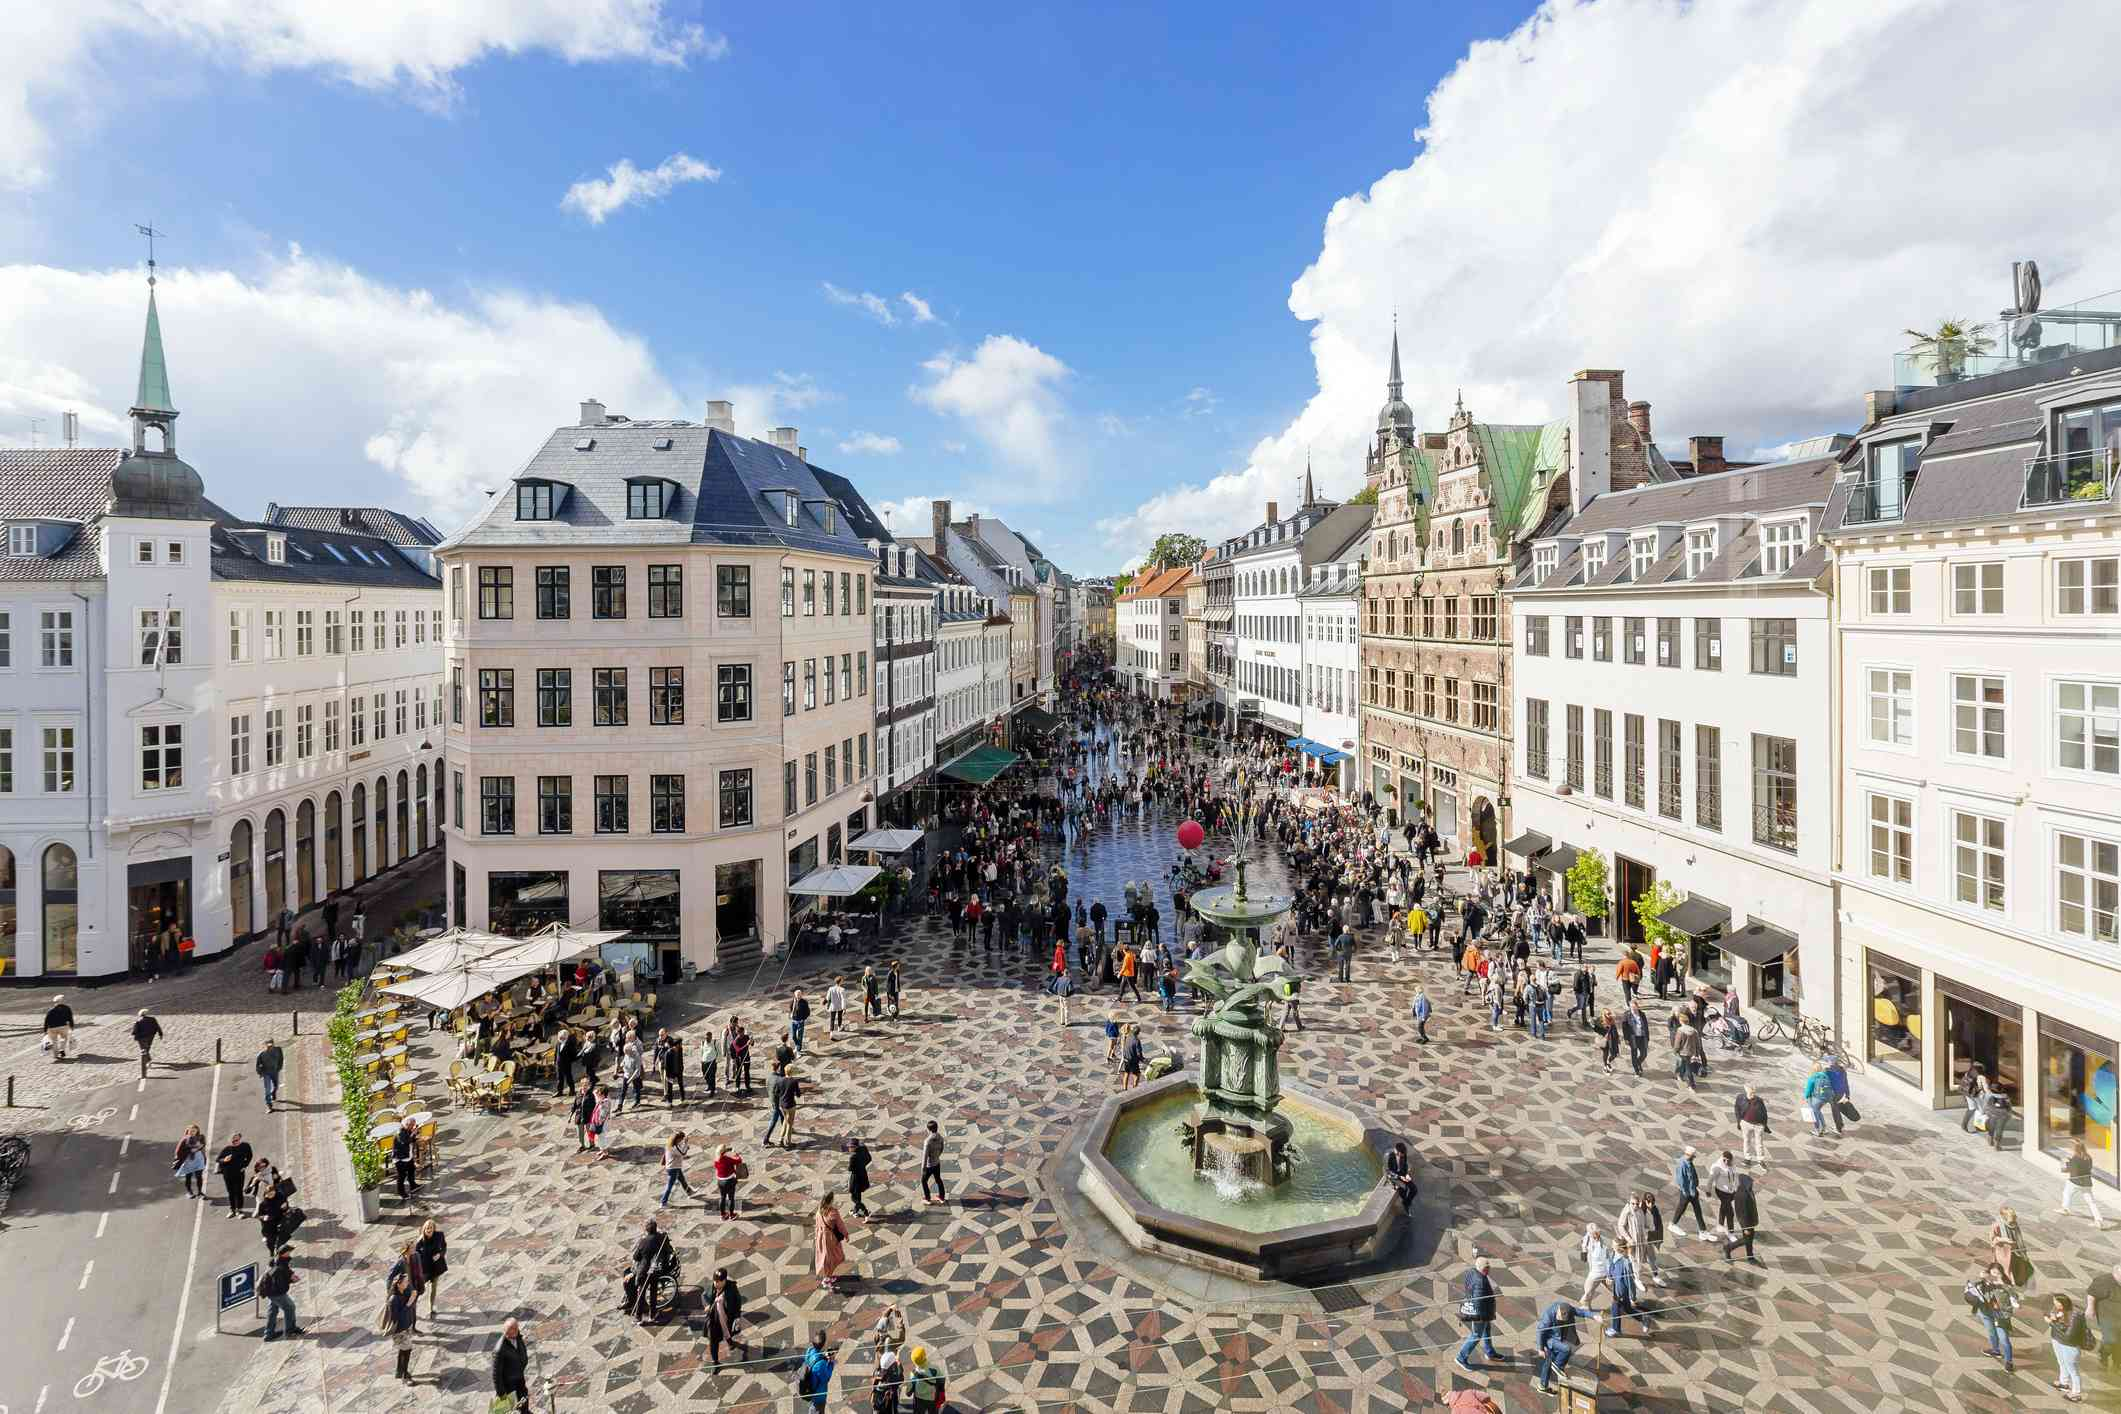 high angle view of people walking around Amagertorv town square with a fountain in the center on buildings on either side in Copenhagen on a sunny day under a blue sky with white clouds